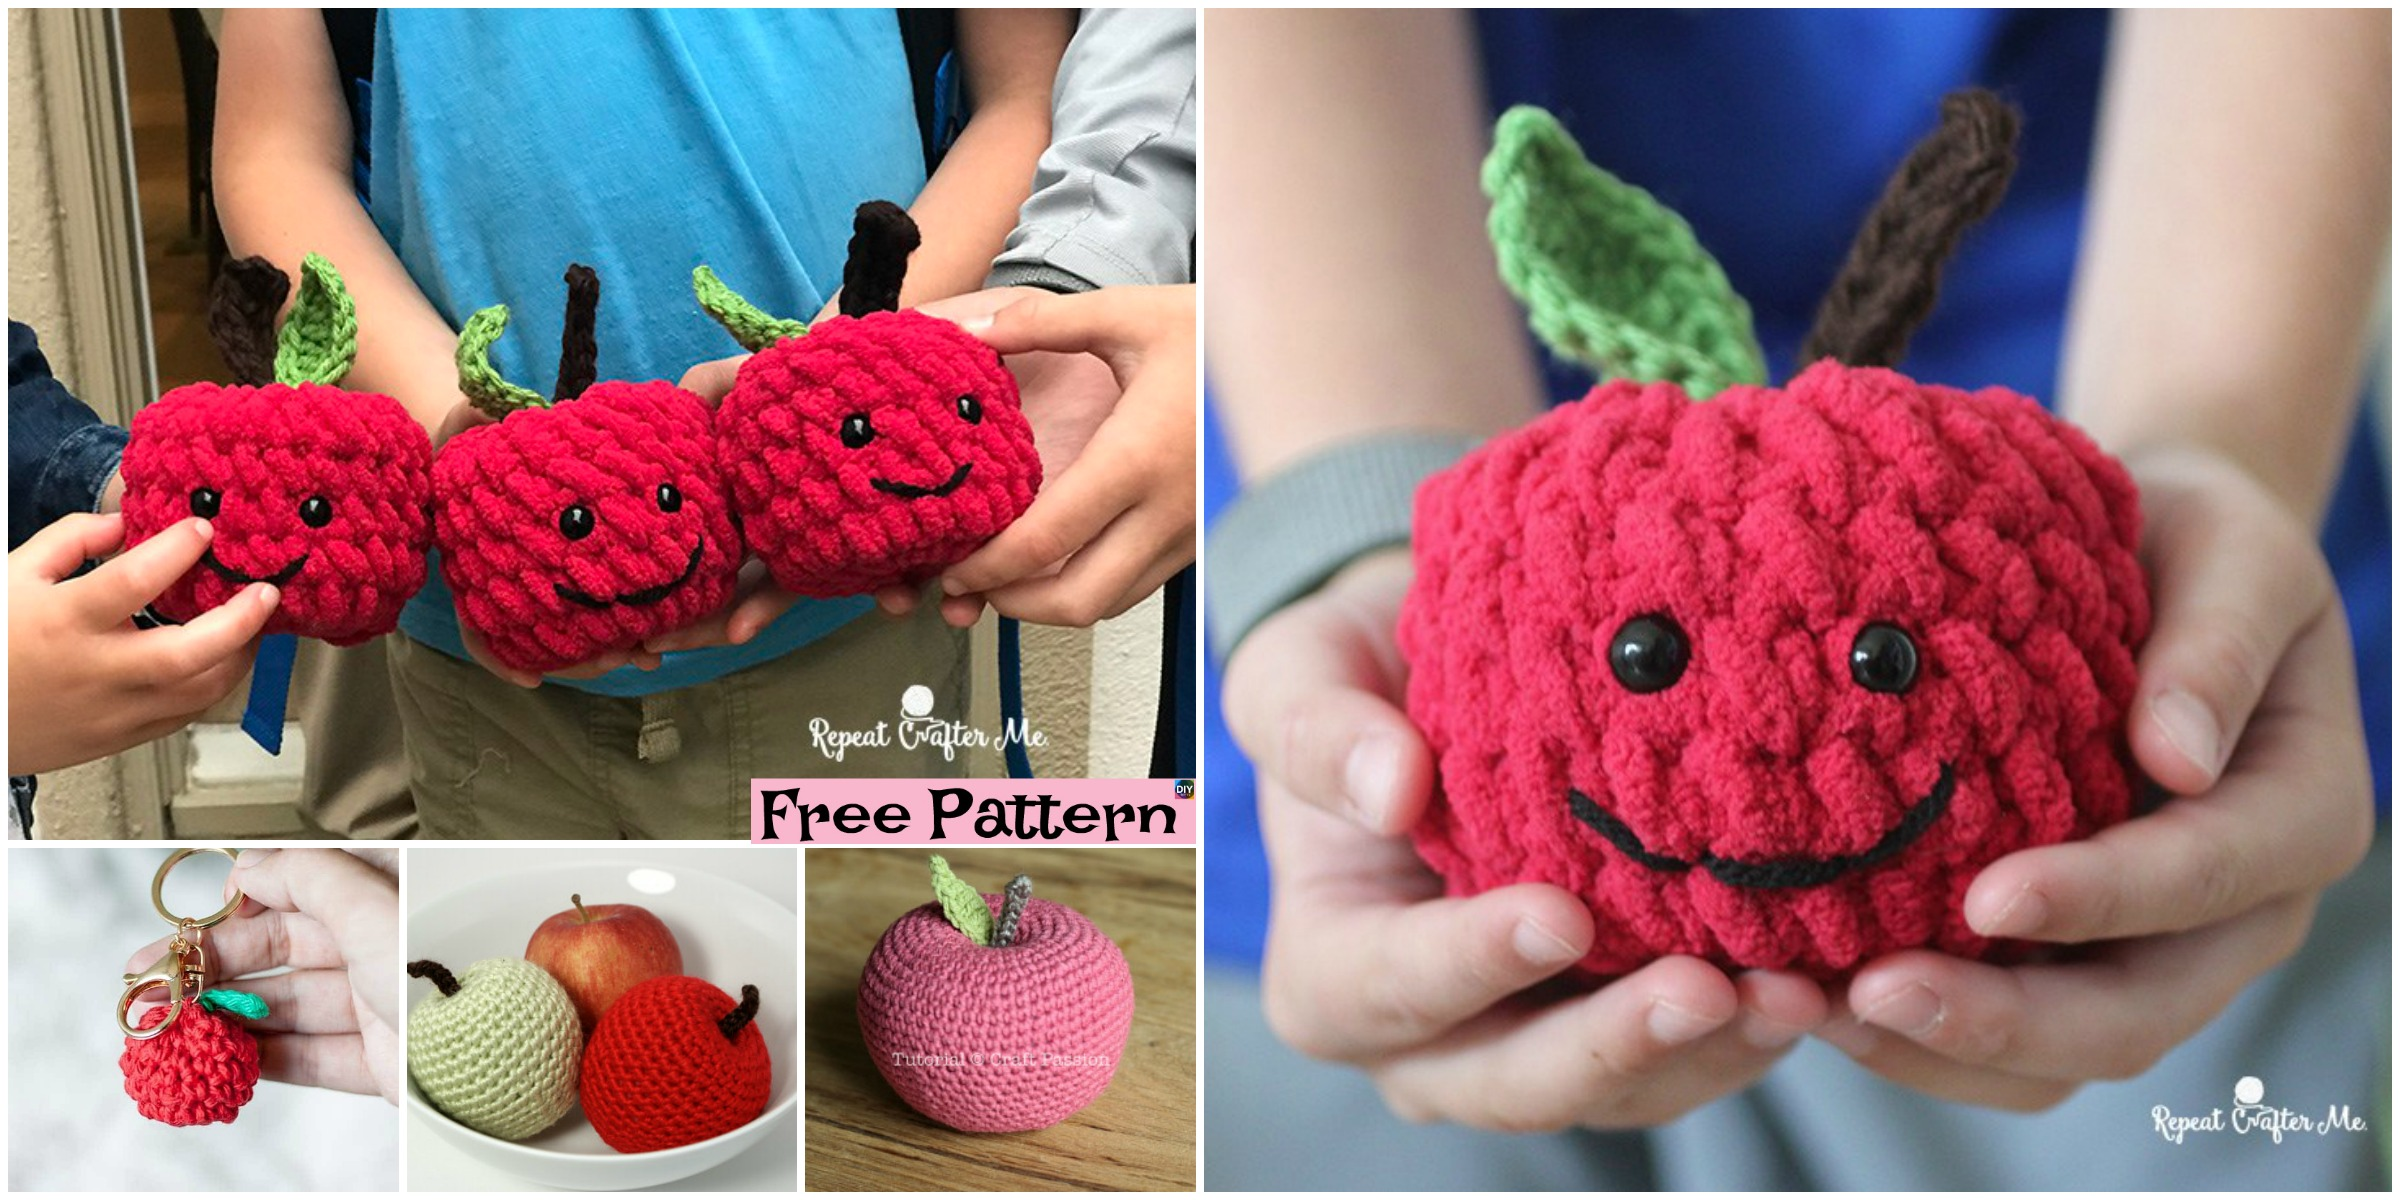 6 Crochet Apple Amigurumi Free Patterns